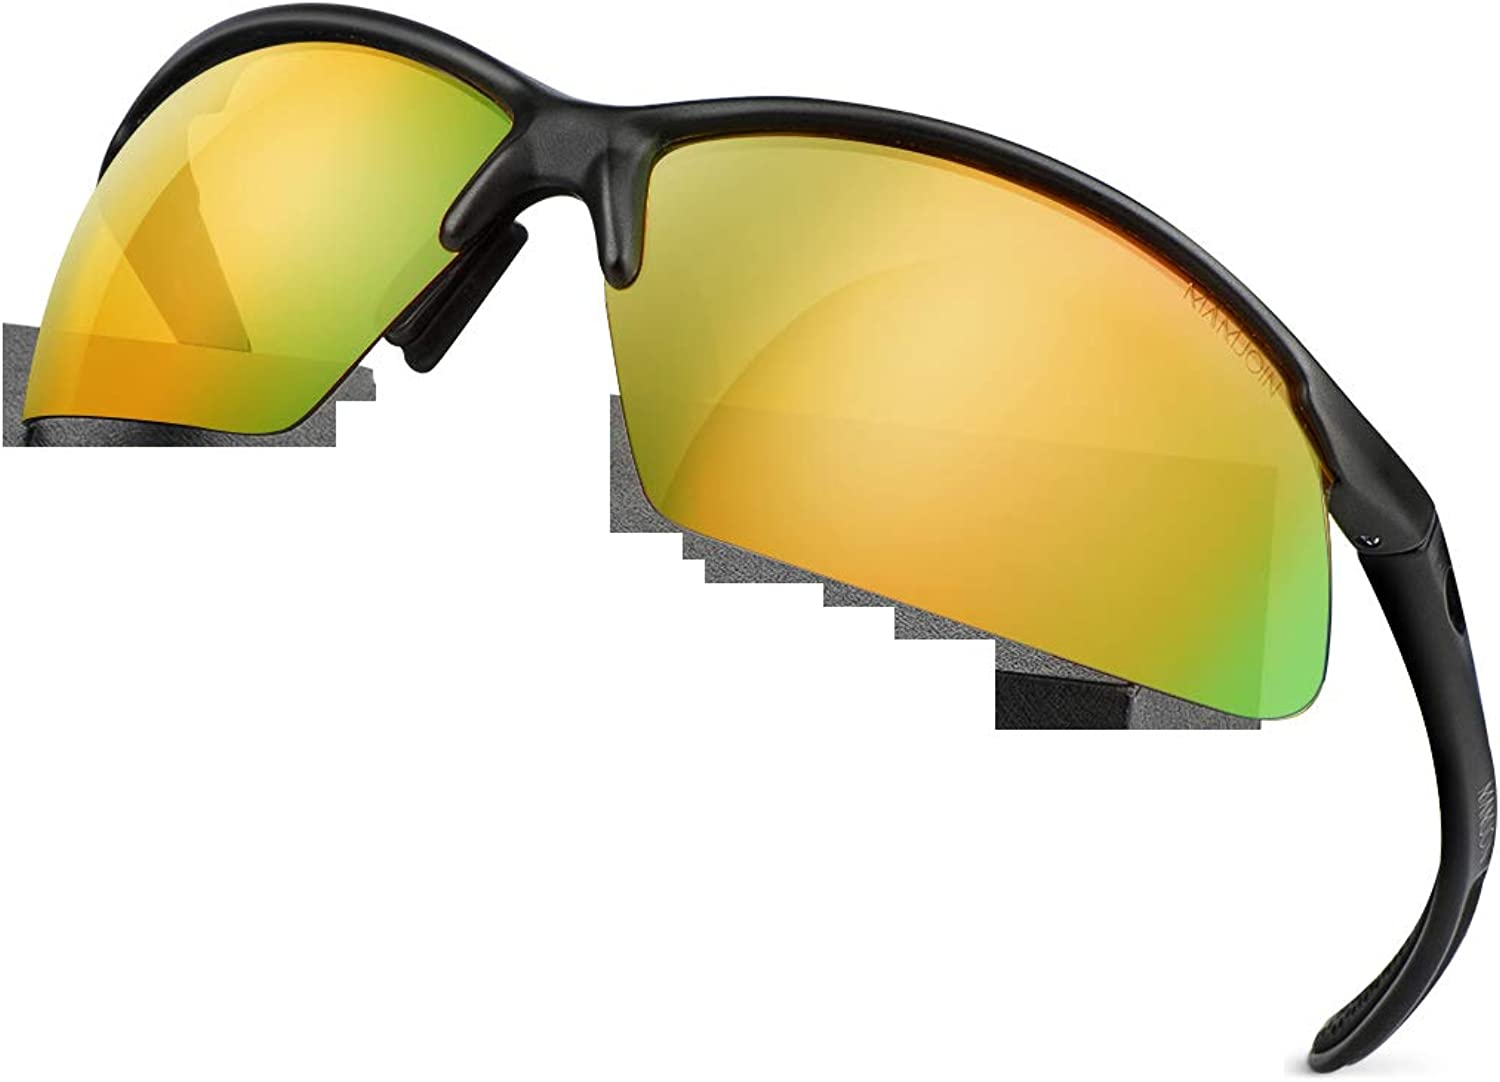 Mamjoin Polarized Sports Sunglasses for UV400 Men Pr Youth Outlet SALE OFFicial store Women